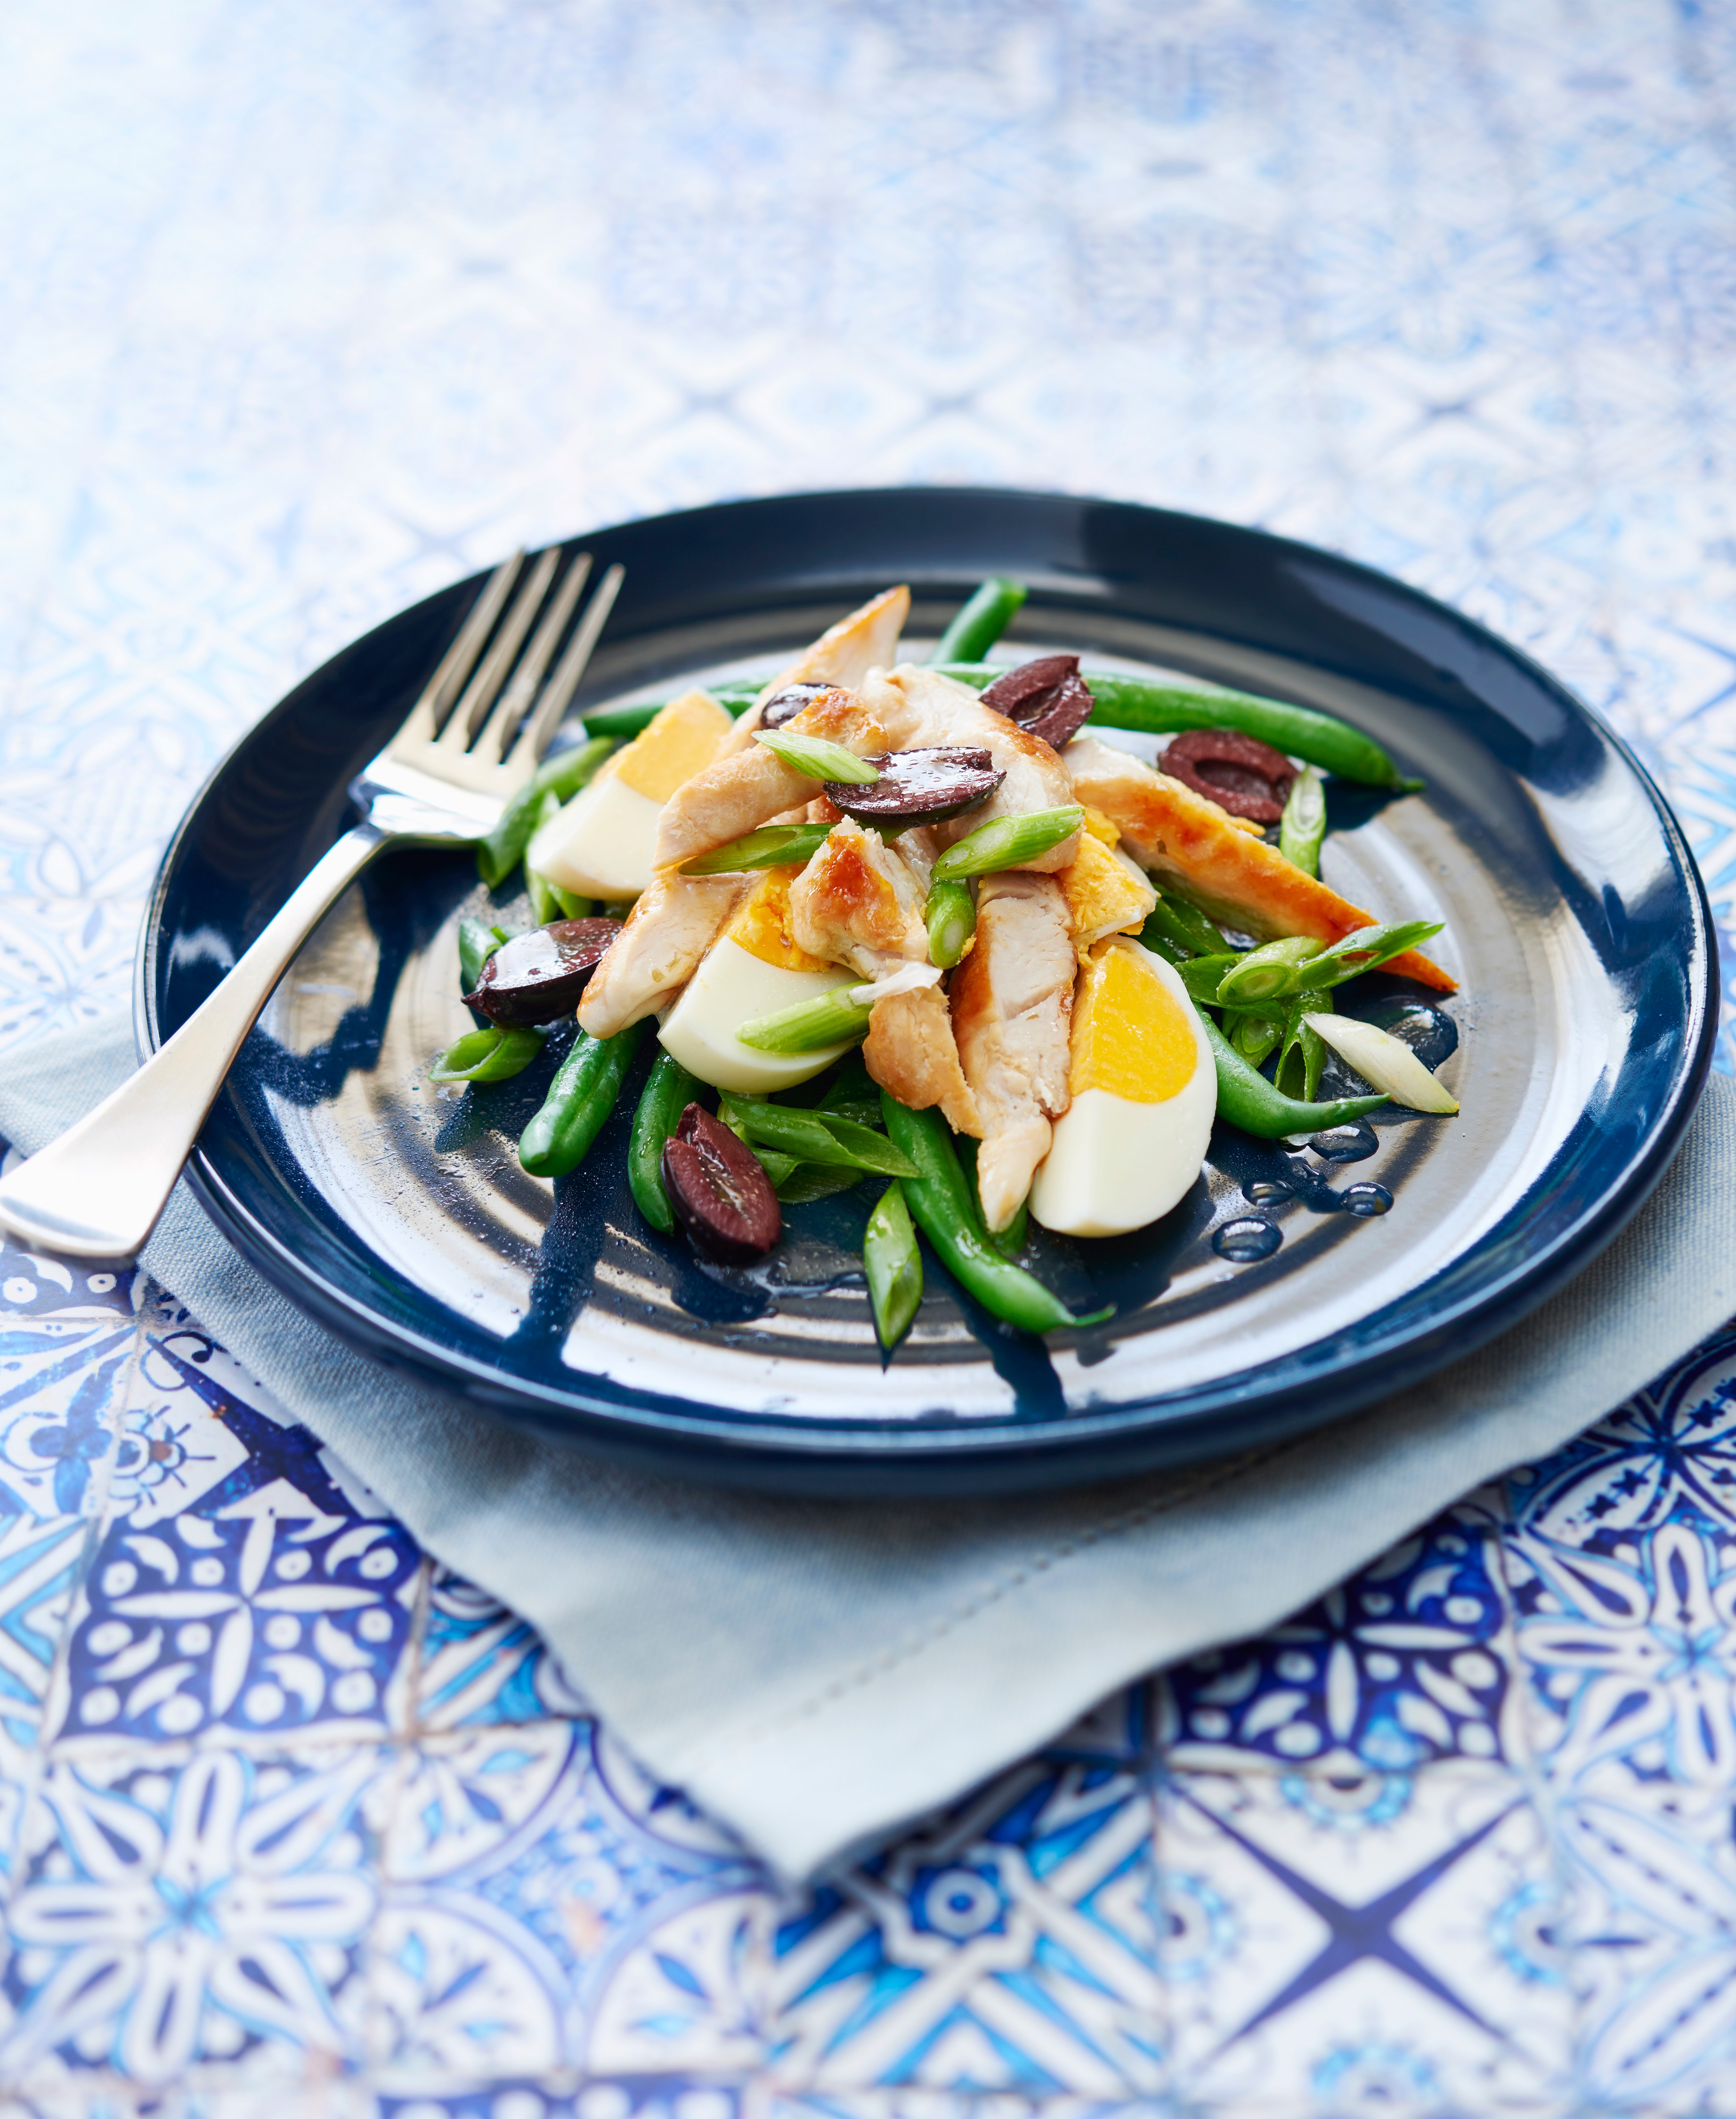 ZOOSH Light Lunch Chicken and Egg French Salad